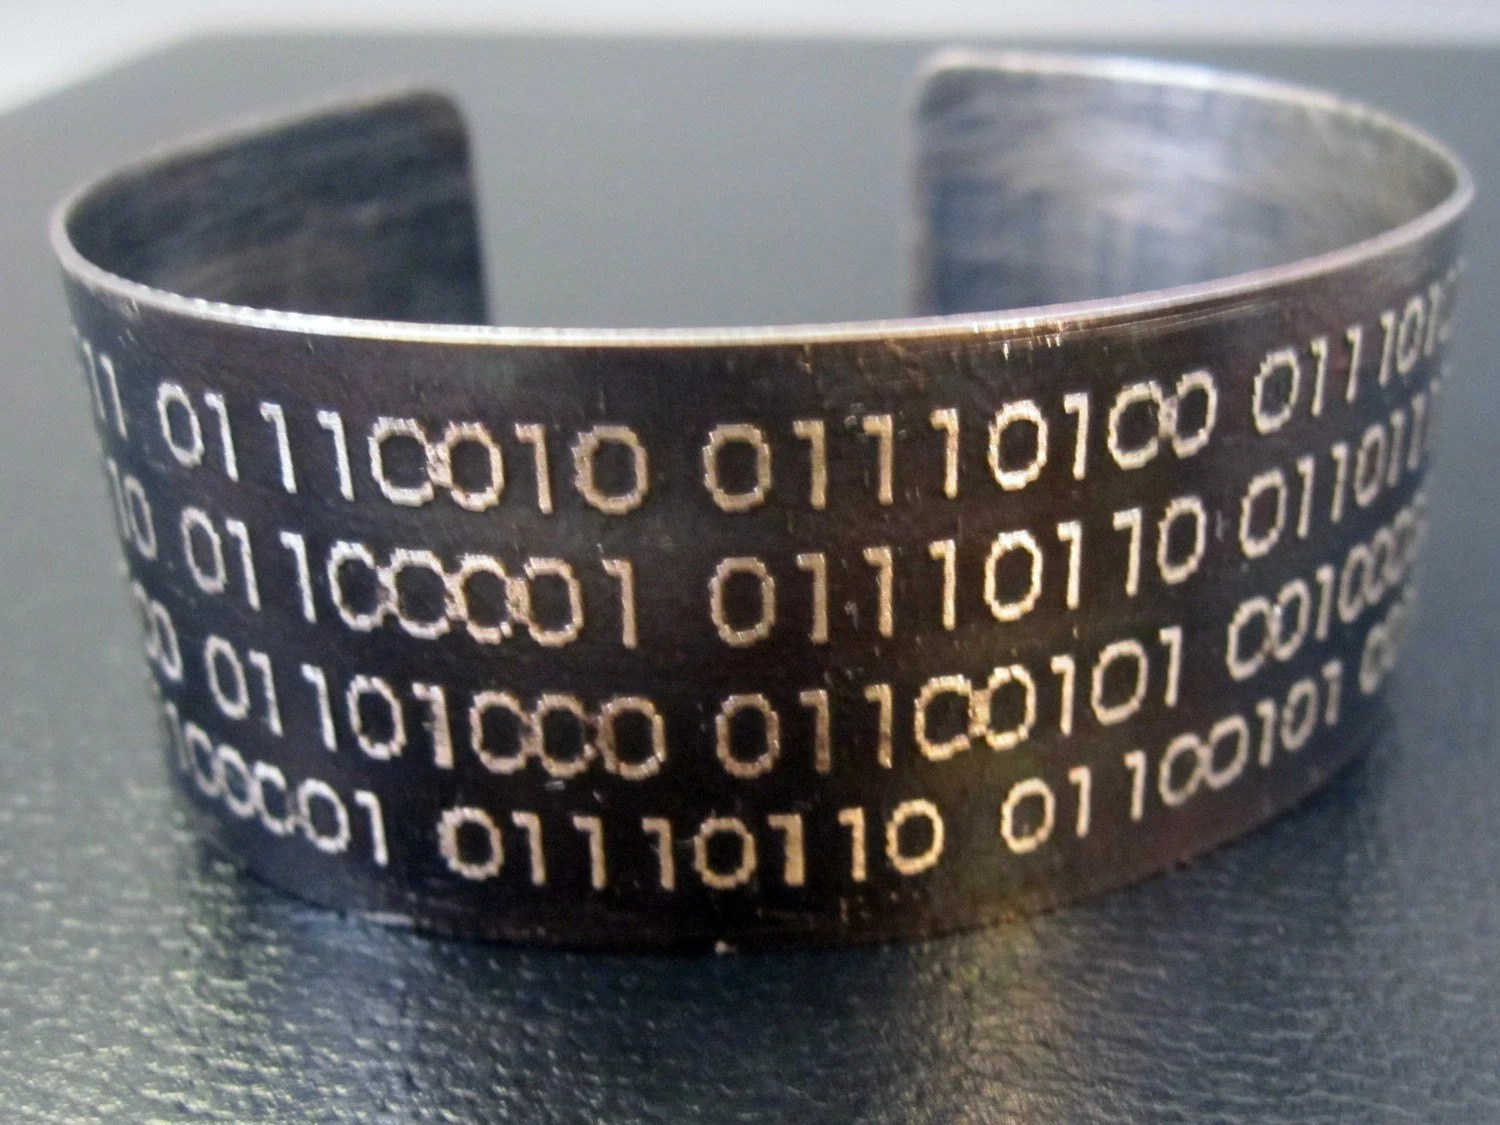 Happiness Depends Upon Ourselves Binary Code Etched Sterling Silver Cuff Bracelet by Karla Wheeler Design on Etsy